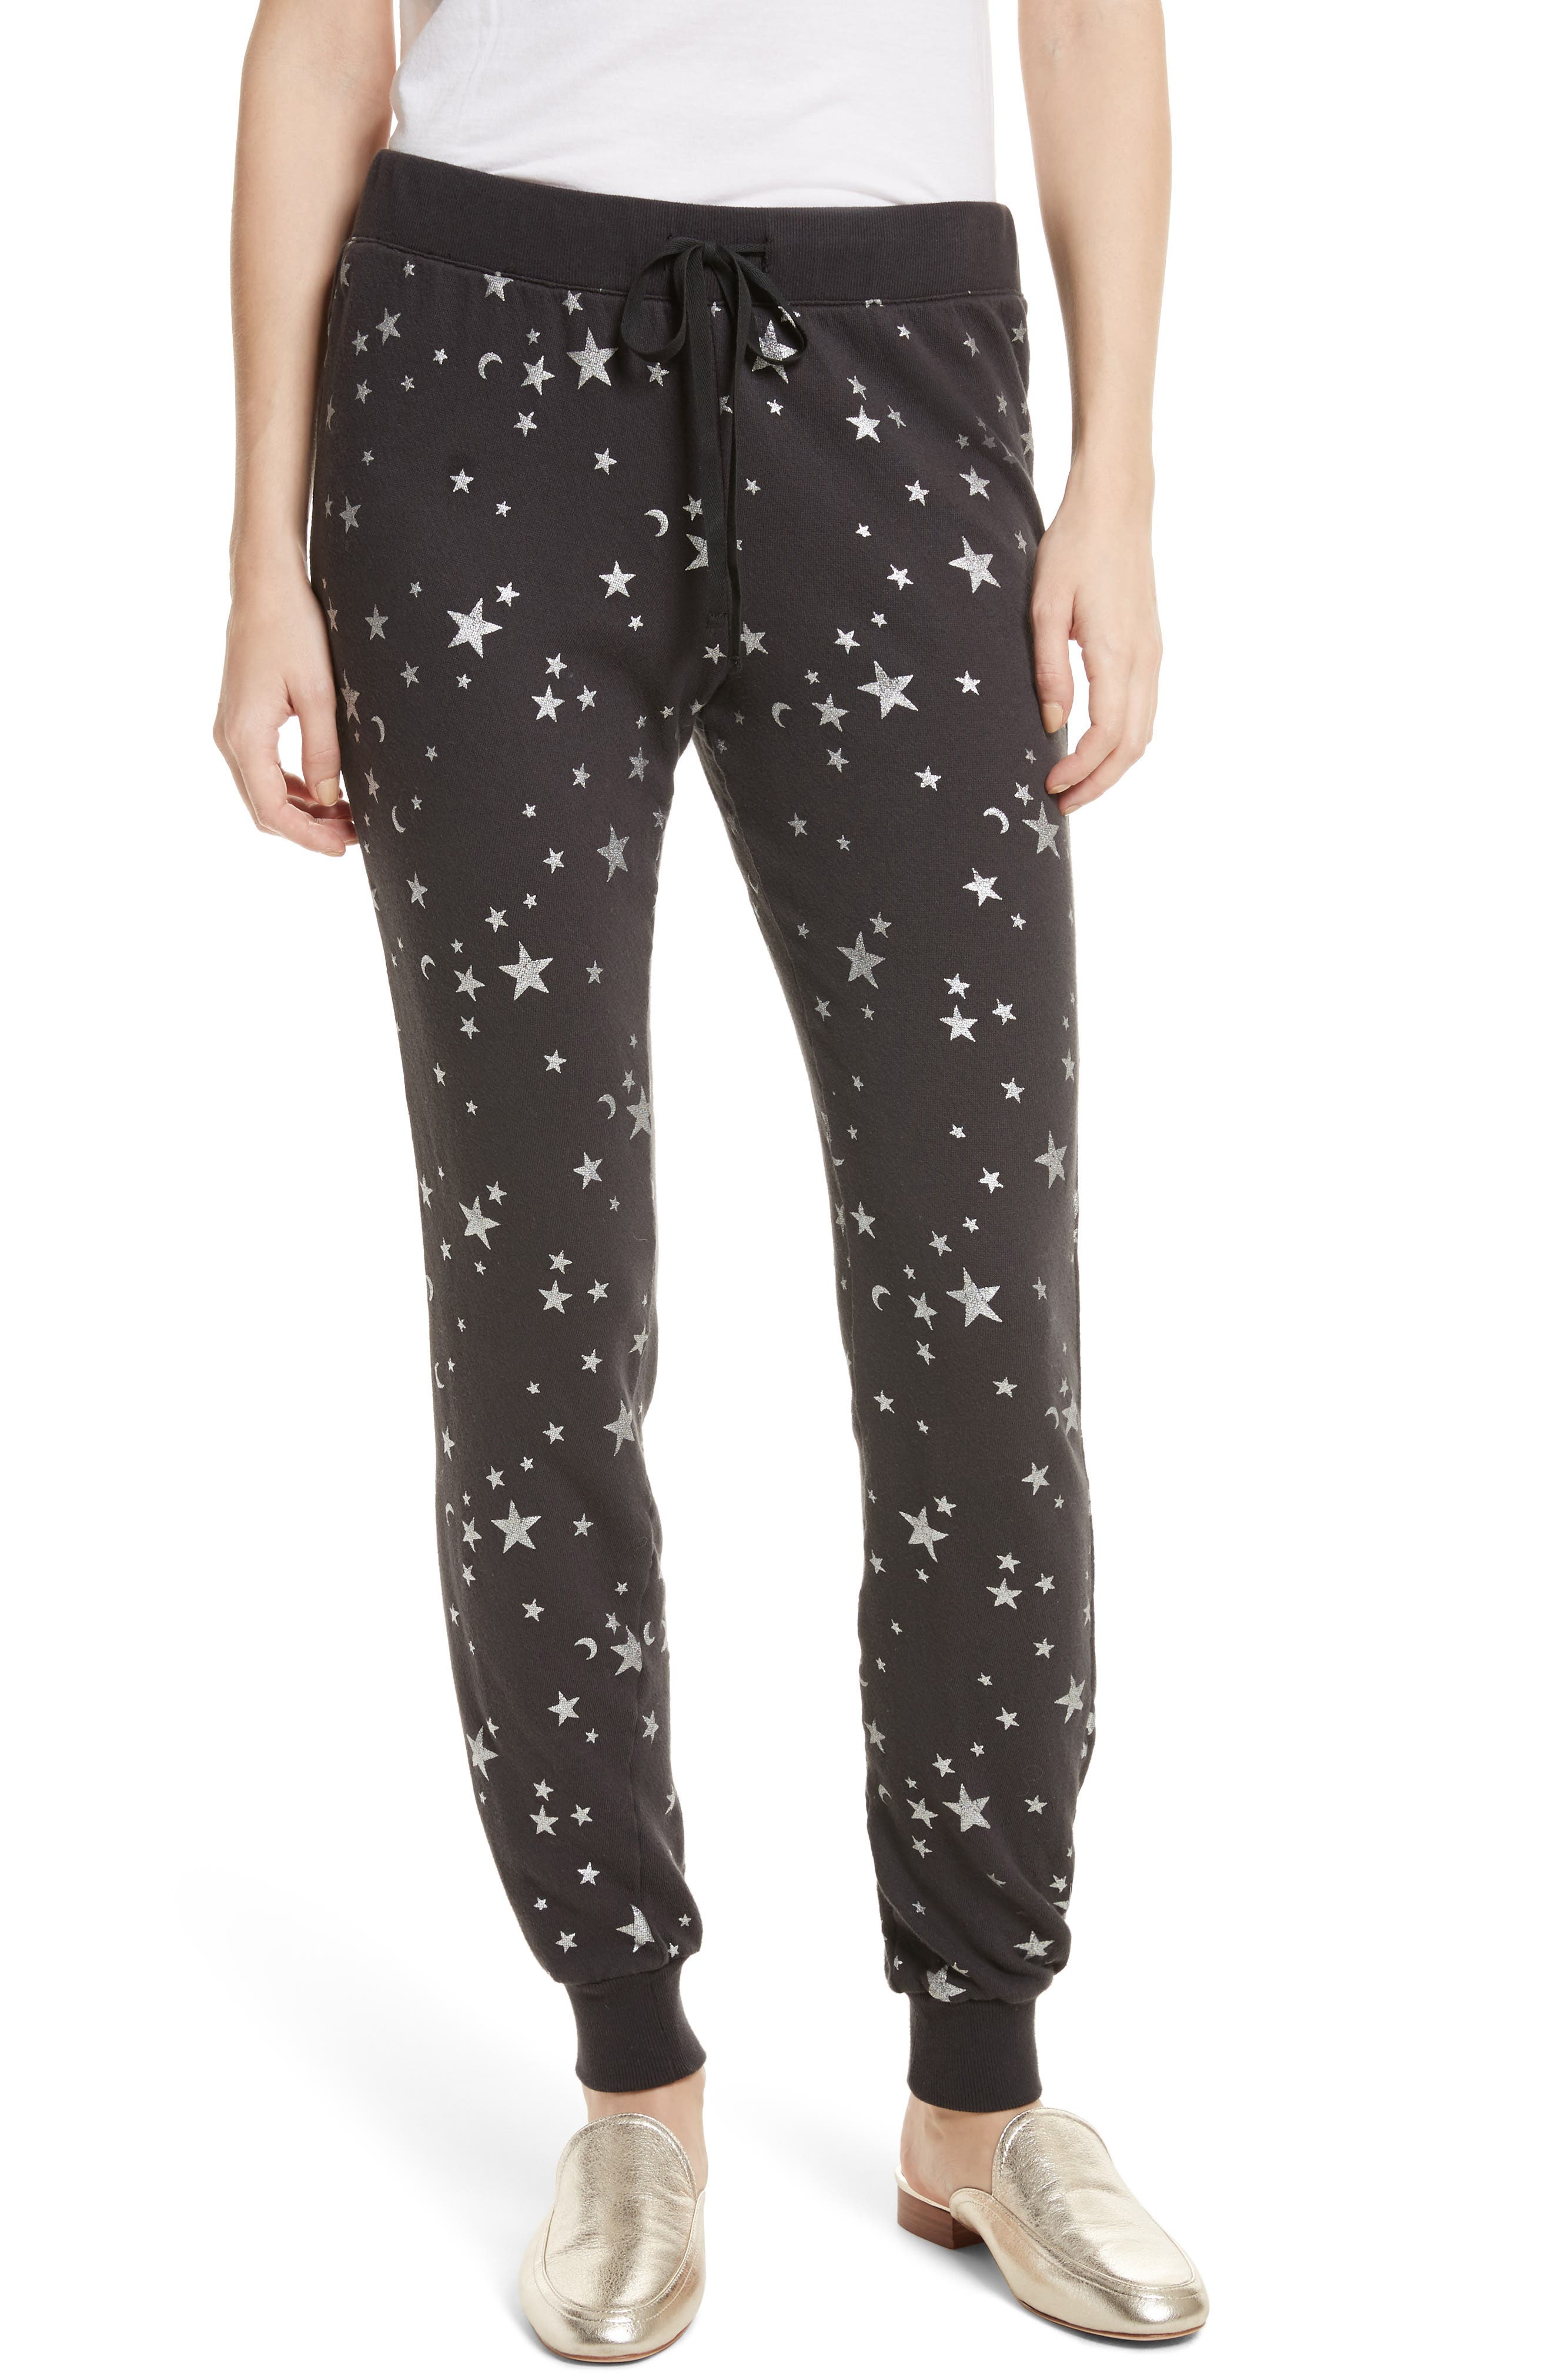 Tendra B Metallic Sweatpants,                         Main,                         color, 002